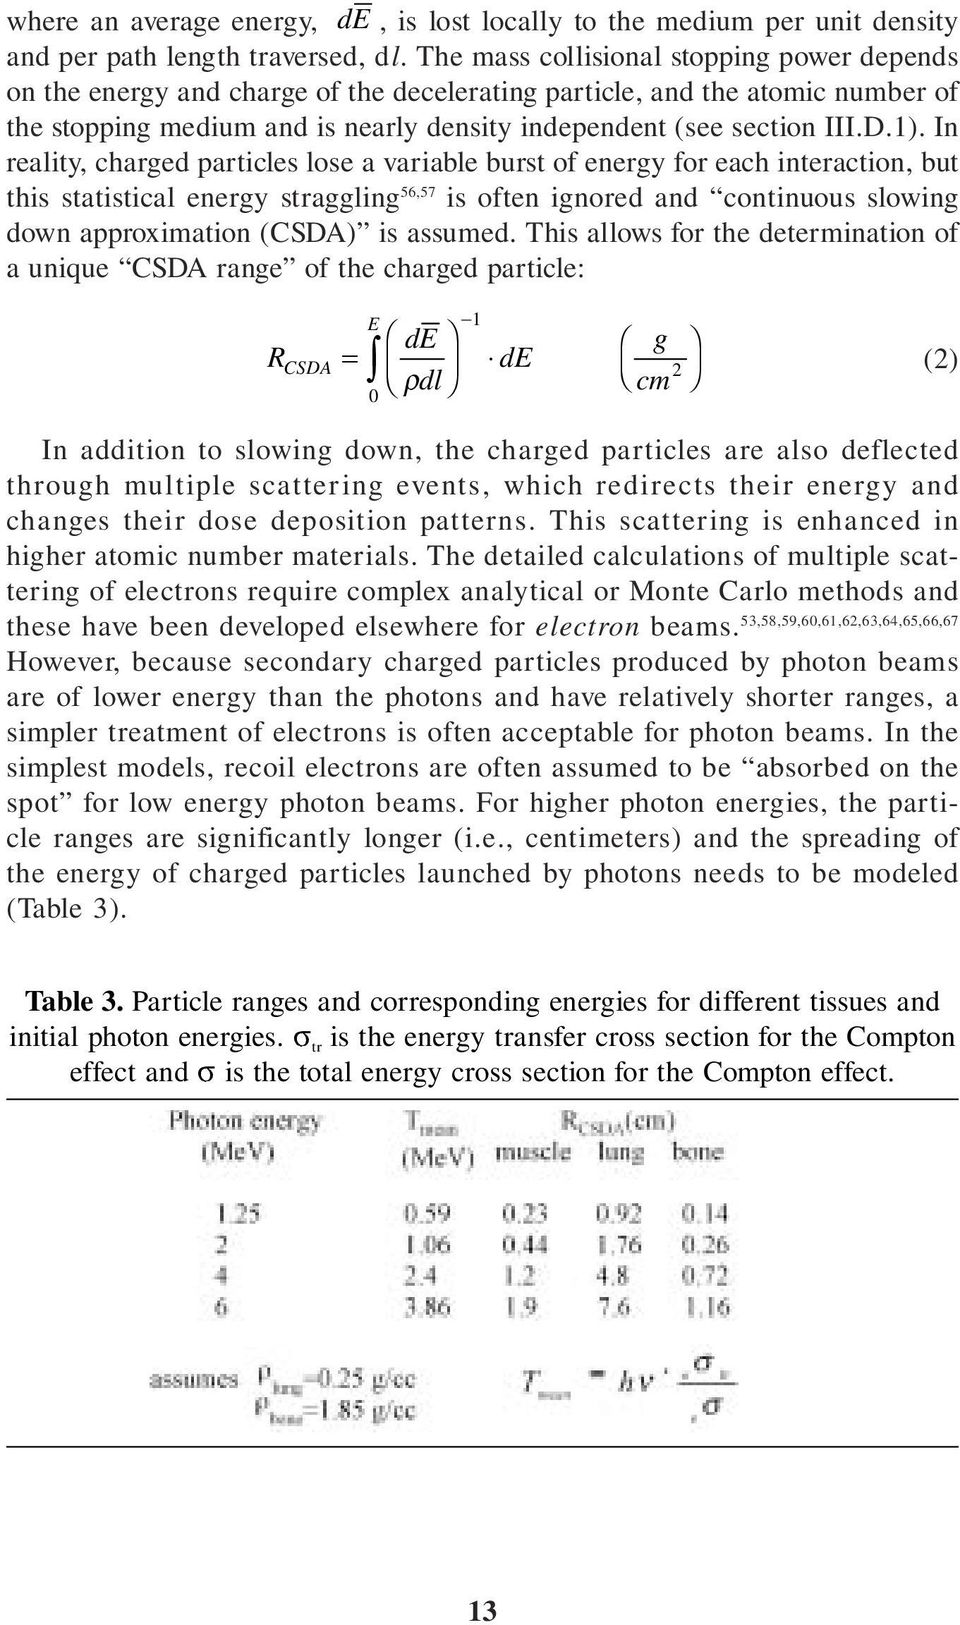 In reality, charged particles lose a variable burst of energy for each interaction, but this statistical energy straggling 56,57 is often ignored and continuous slowing down approximation (CSDA) is